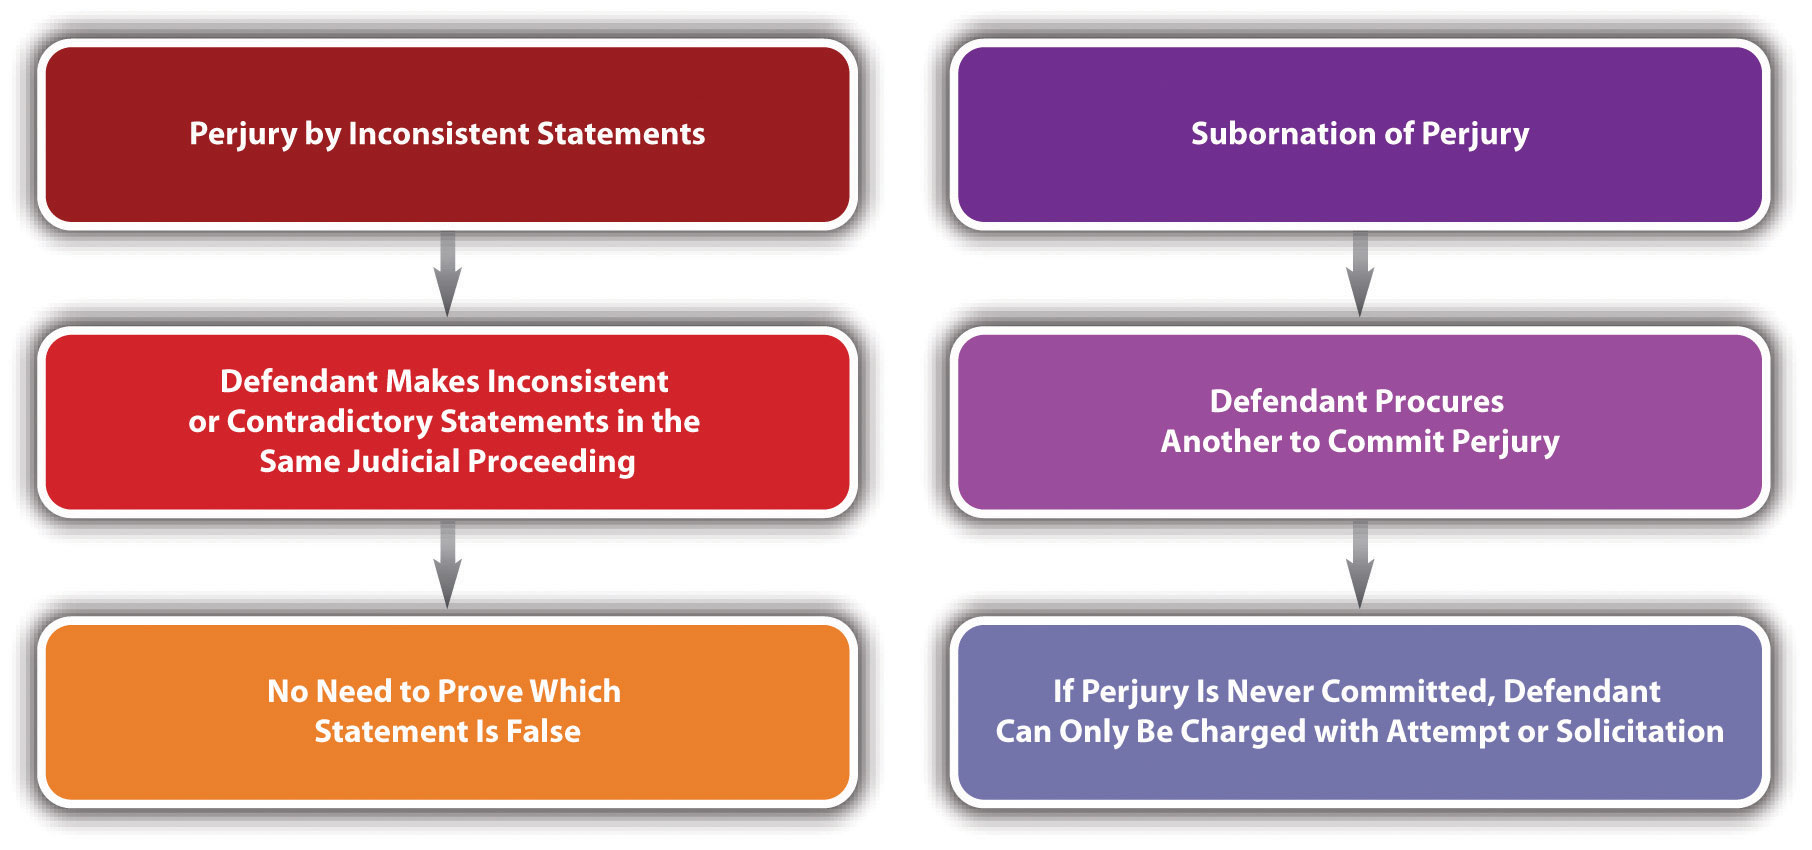 Comparison of Perjury by Inconsistent Statements and Subornation of Perjury